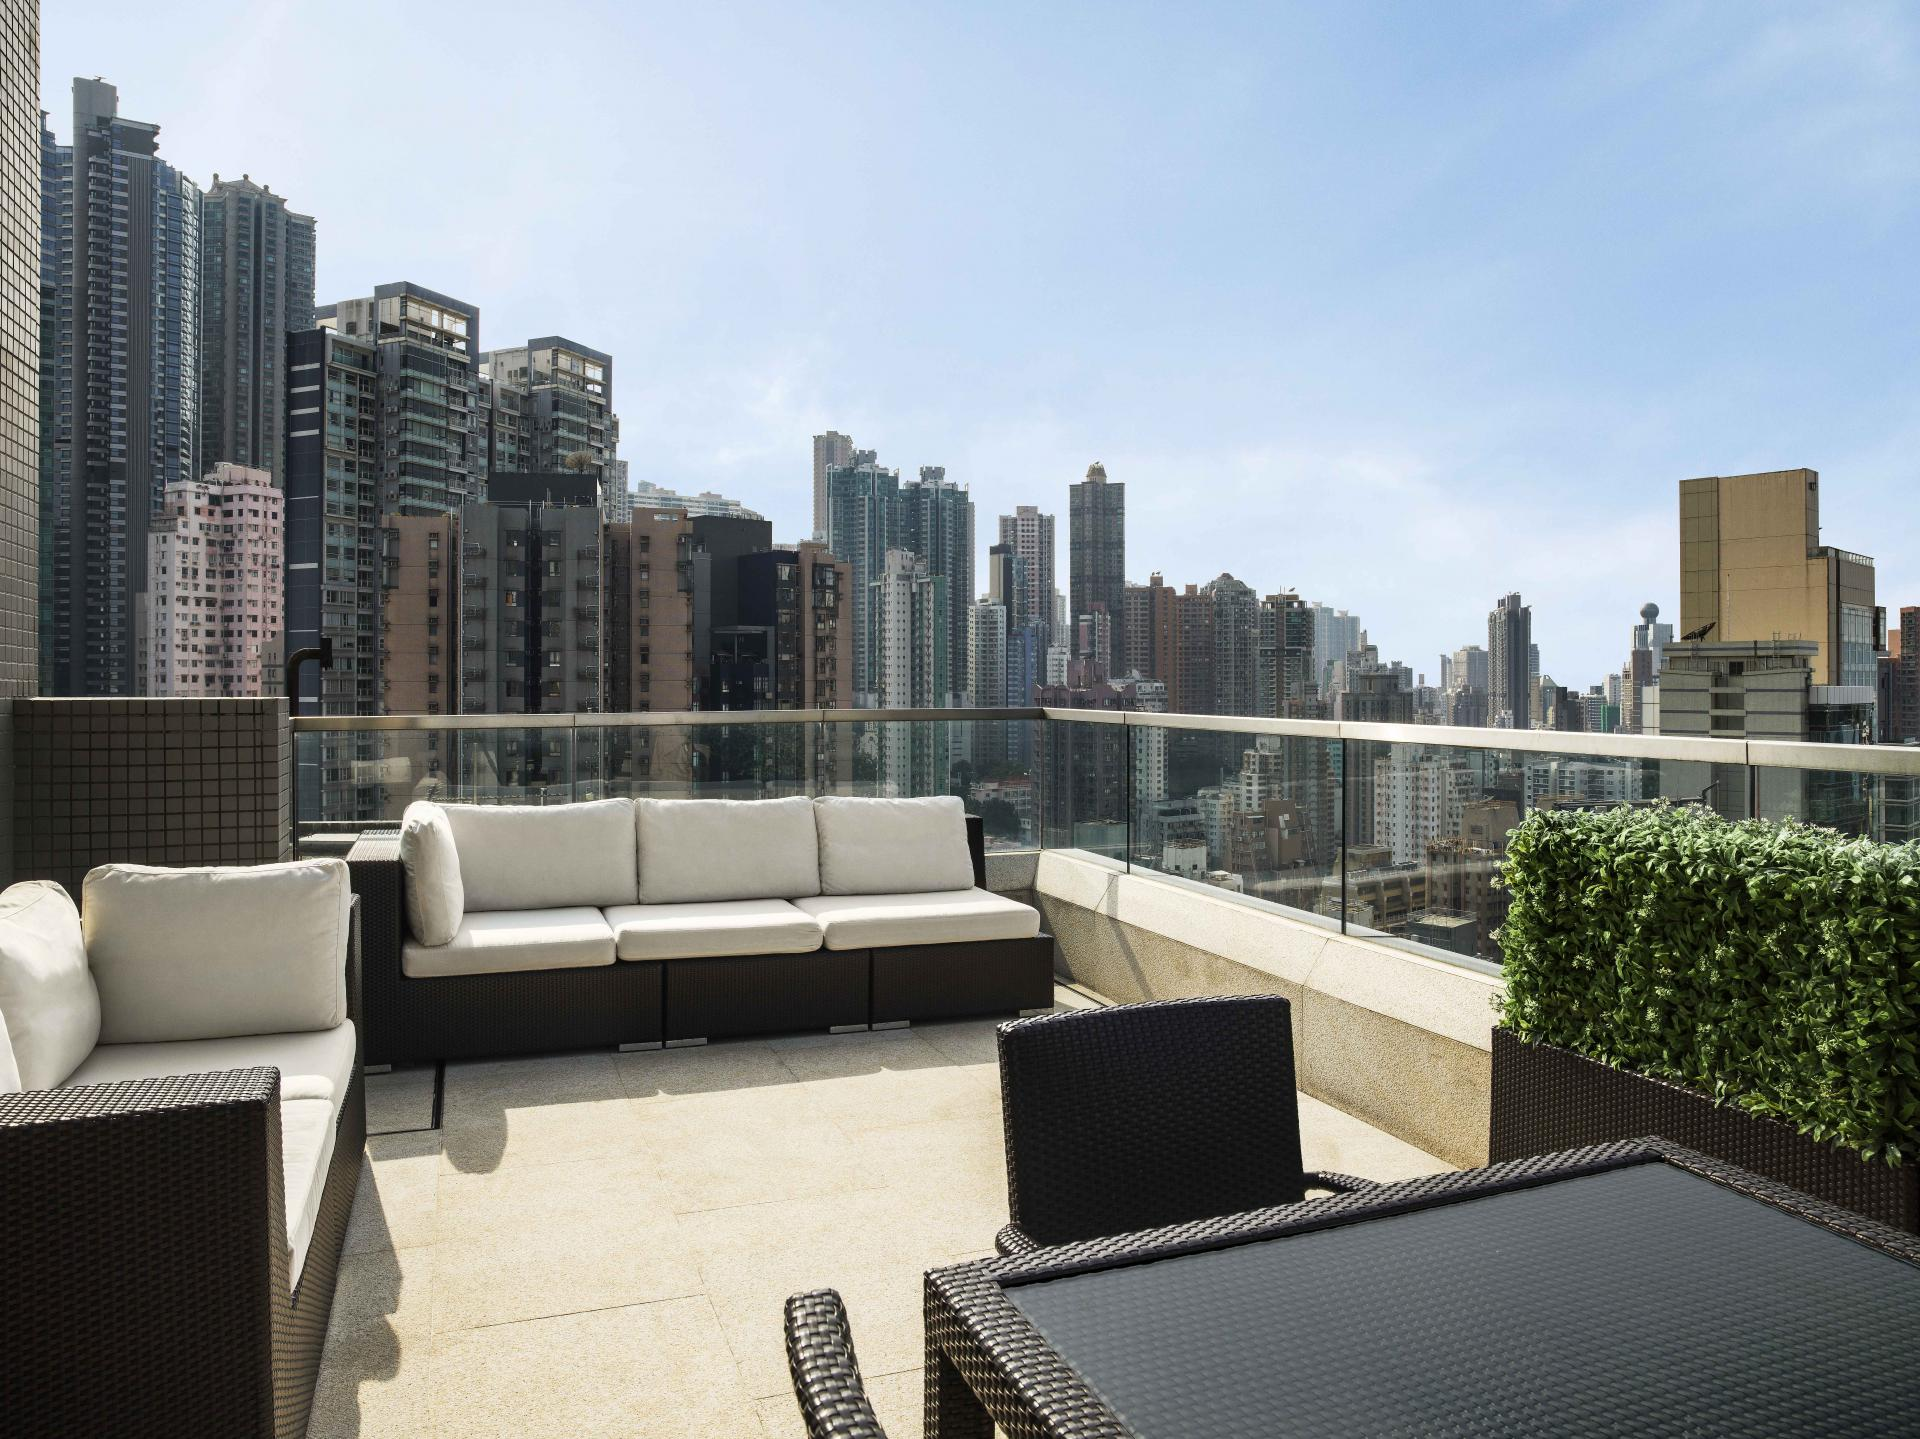 View at Queens Road Apartments, Sheung Wan, Hong Kong